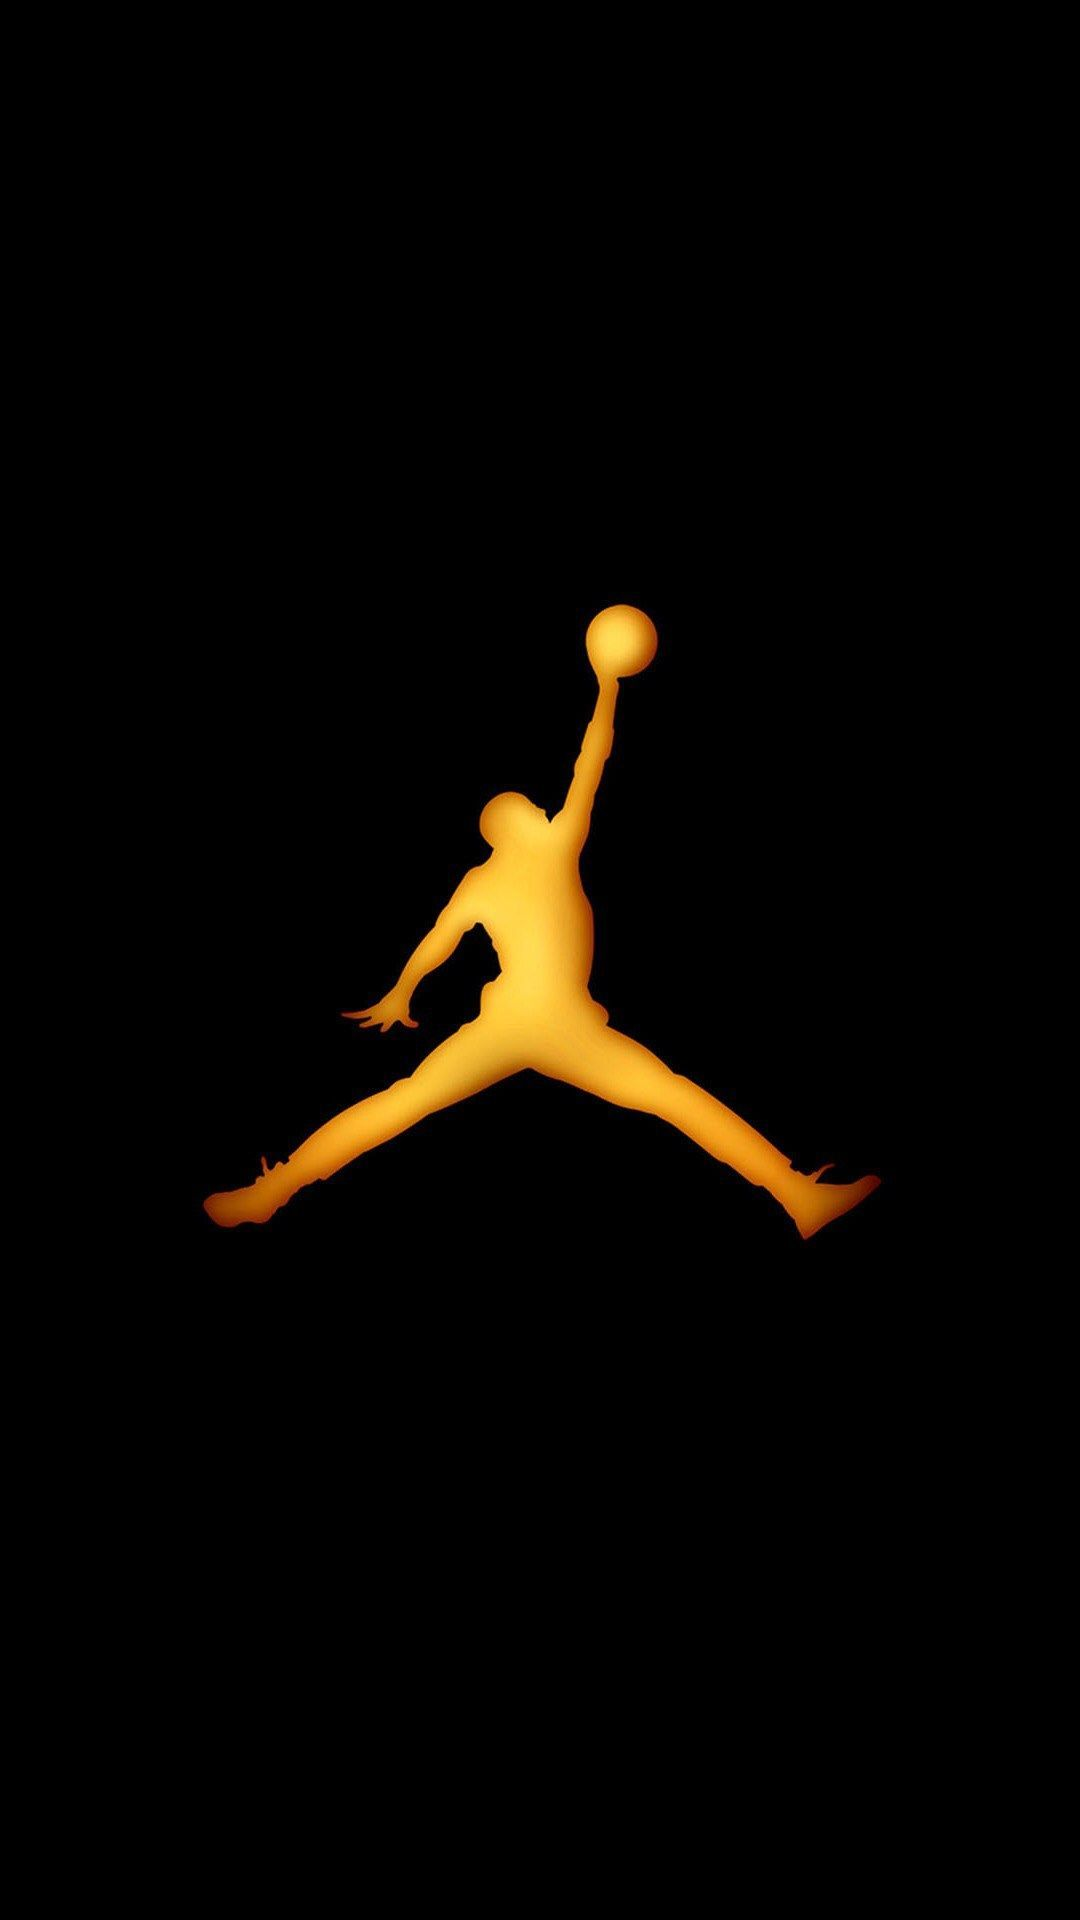 1080x1920 Jordan Jumpman 23 IPhone HD Wallpaper | Amazing HD Wallpaper in 2018 ...